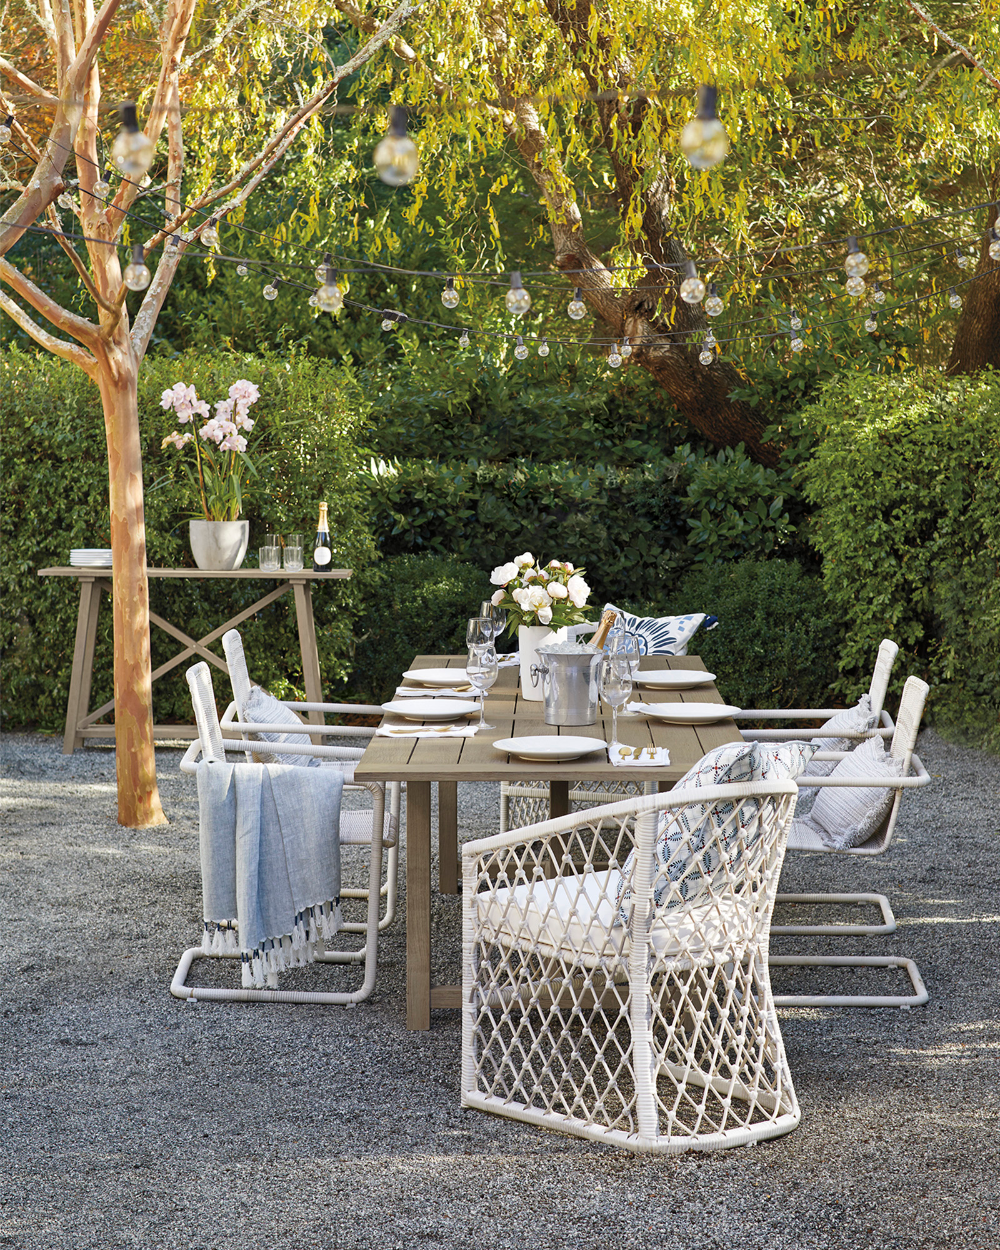 Pin On Photography Compositions For Outdoor Furniture